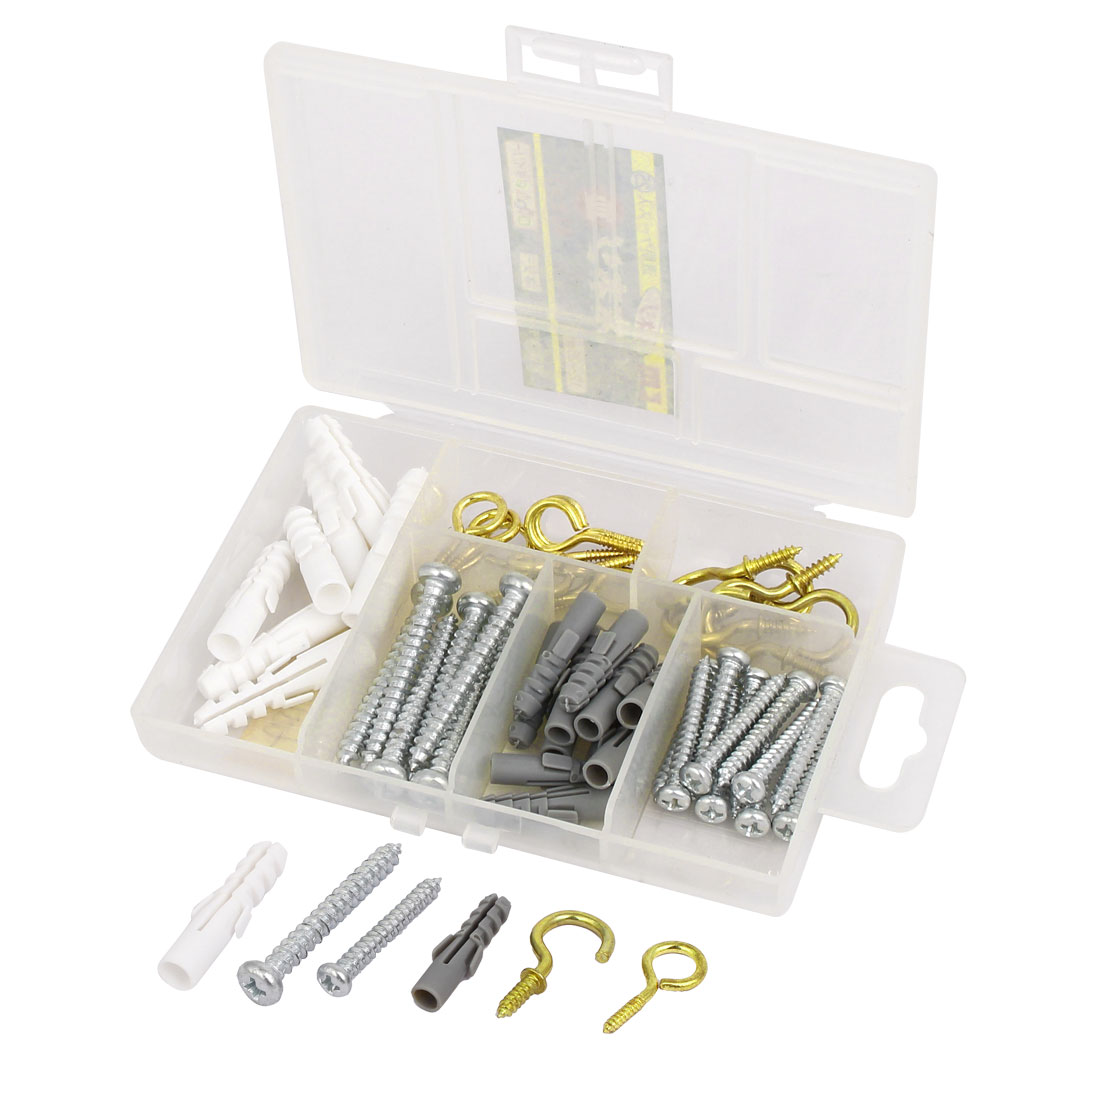 Expansion Nails Cup Hooks Eye Hooks Screws Household Fastener Set